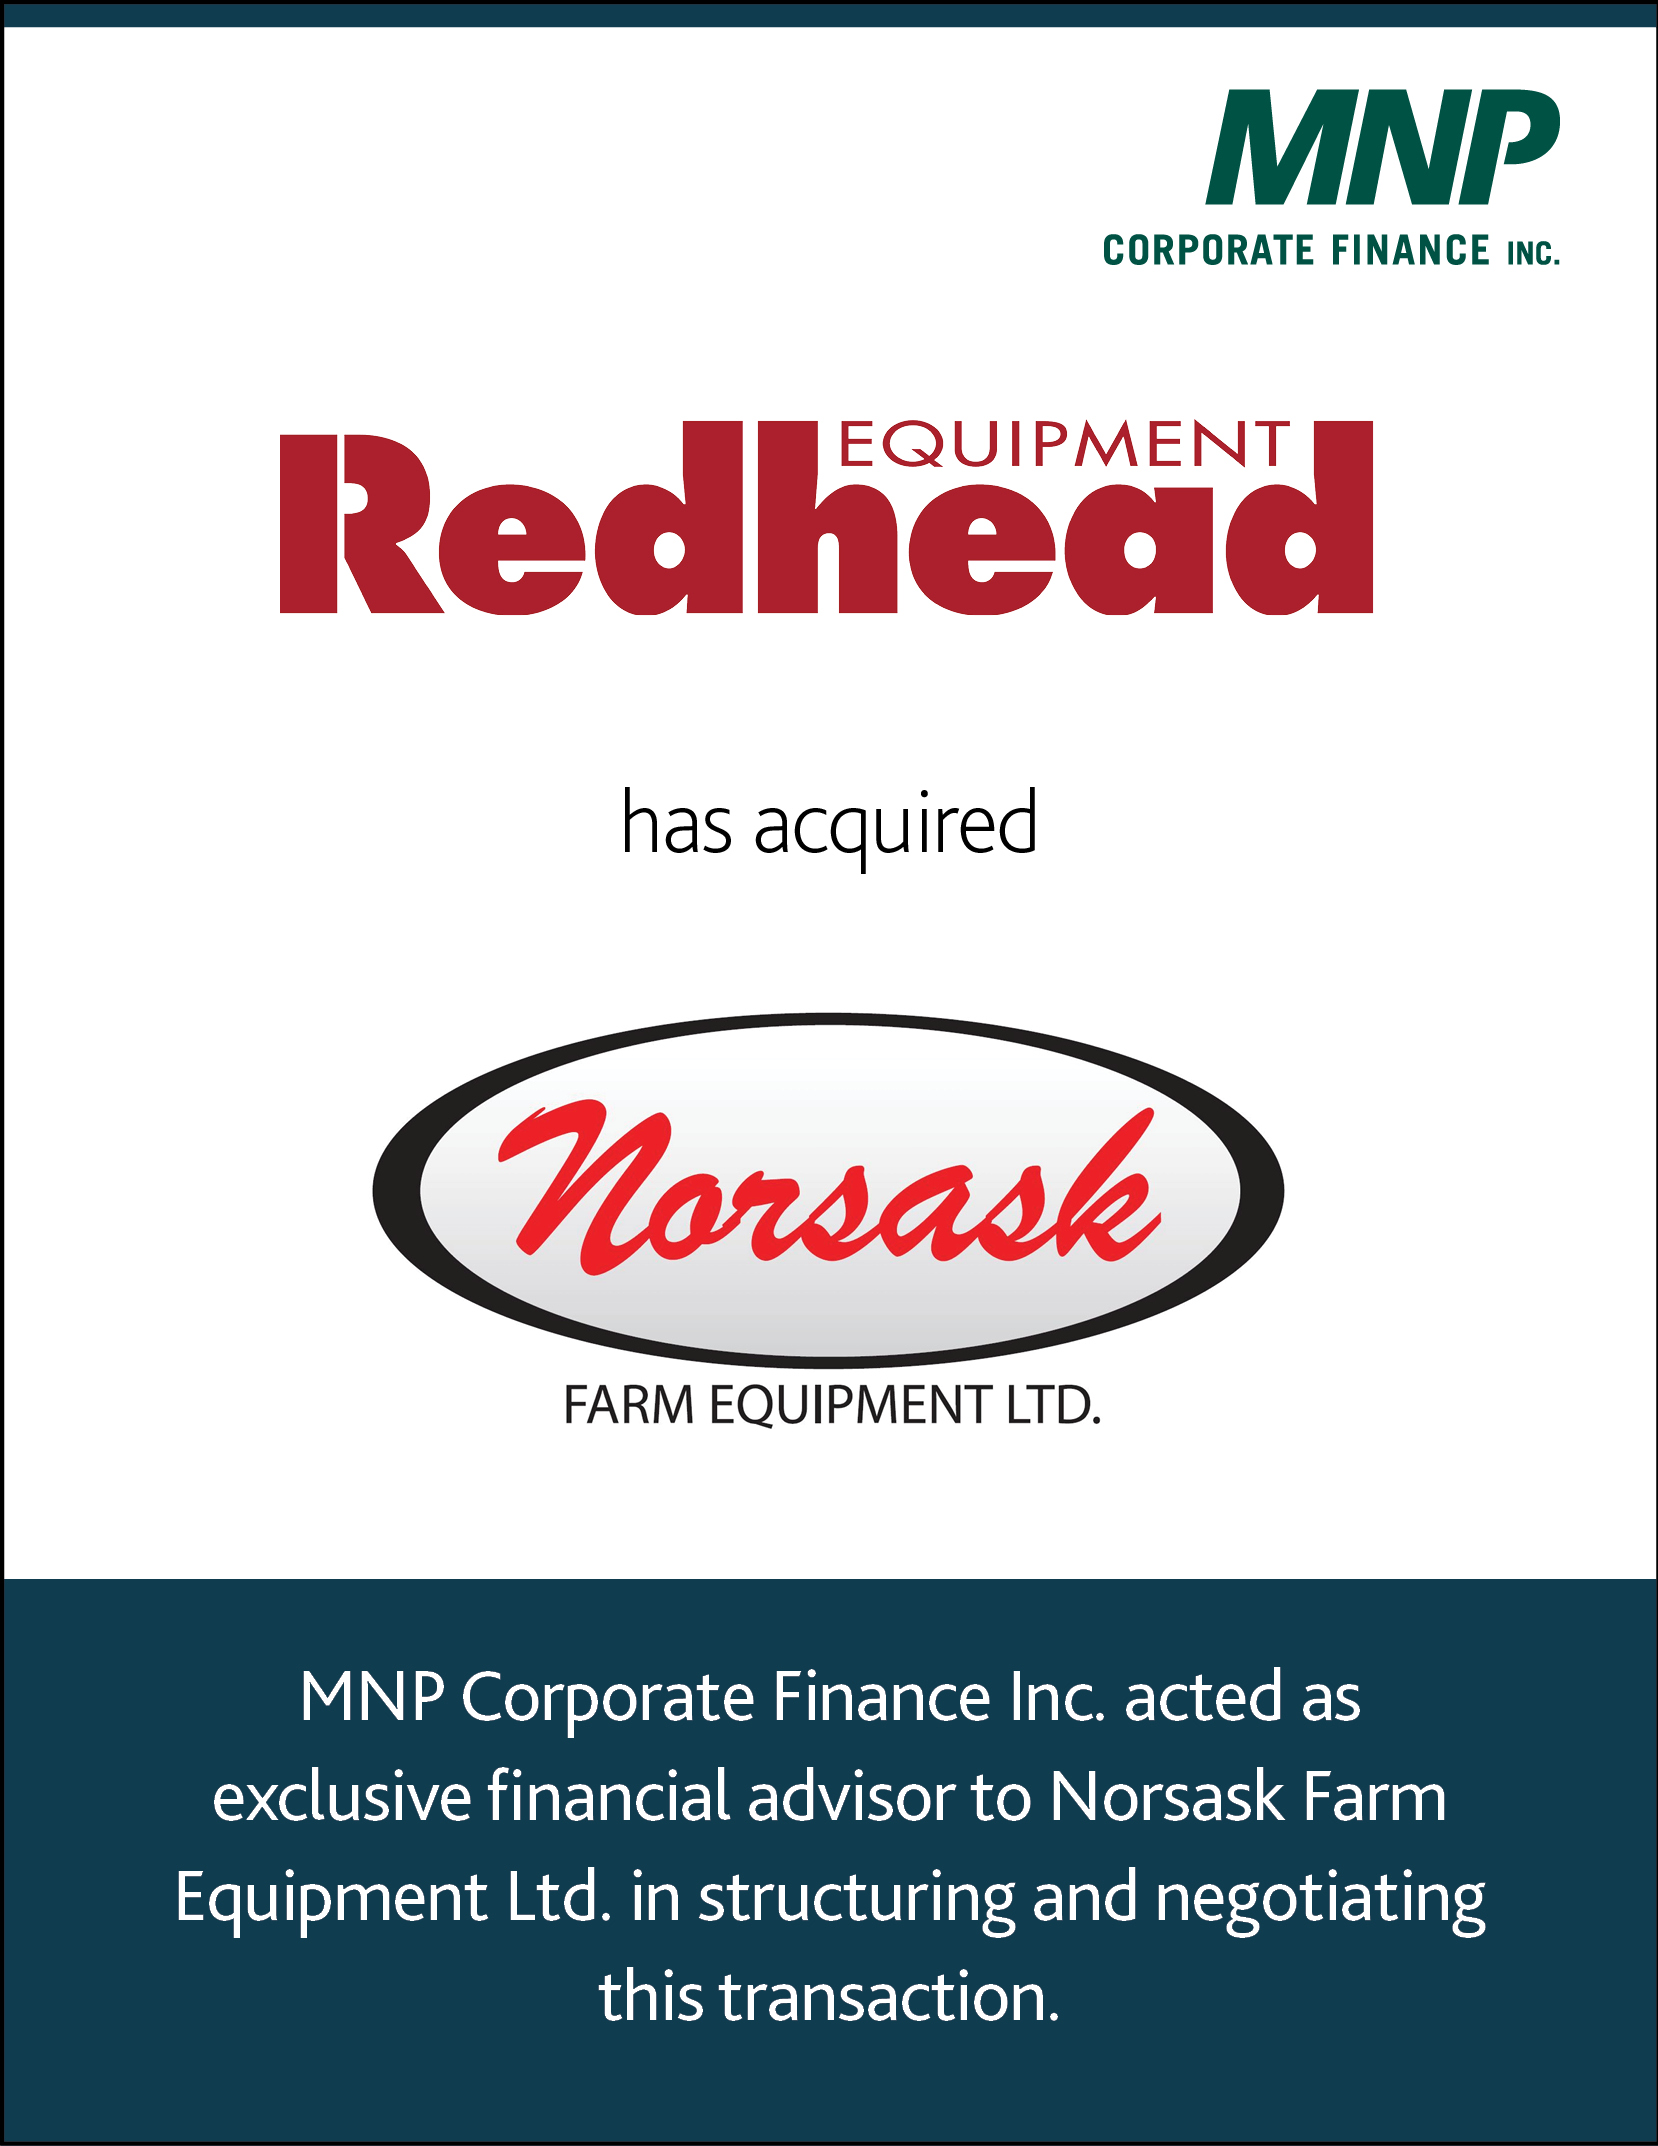 Redhead Equipment has acquired Norsask Farm Equipment Ltd.